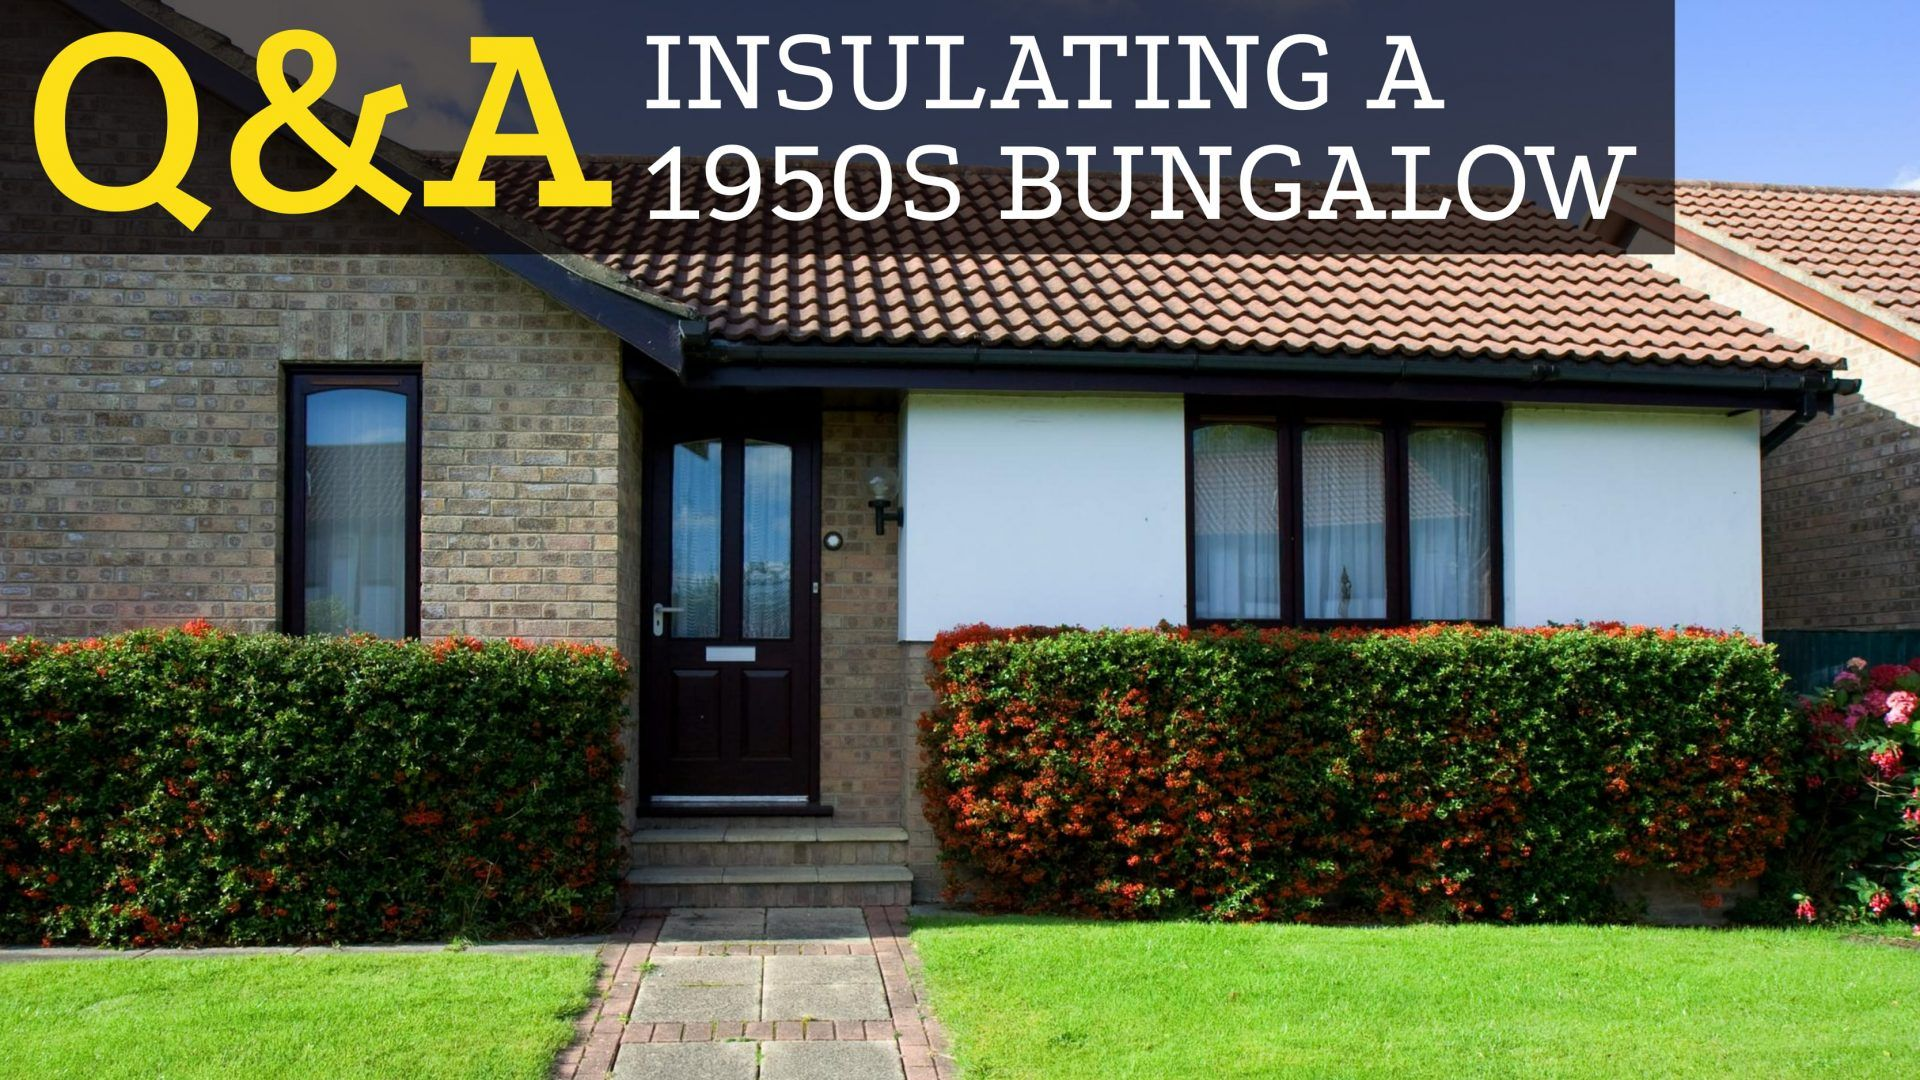 Q&A OF THE WEEK Insulating a 1950s Brick Bungalow